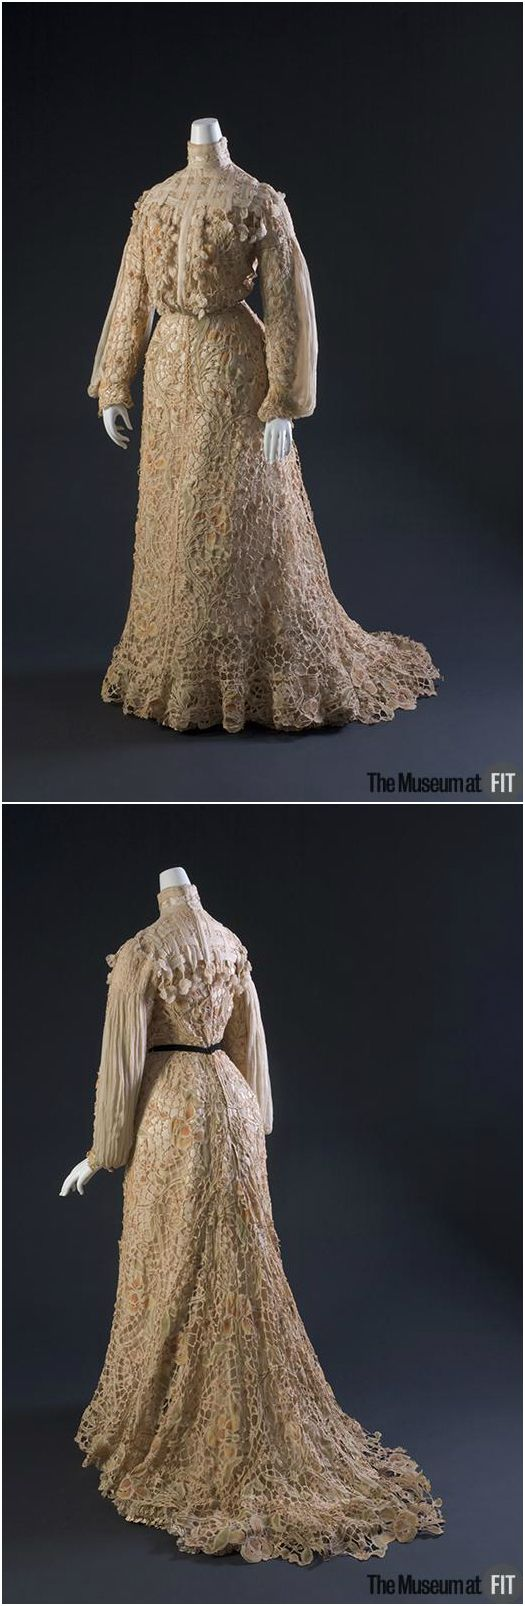 Dress, 1904, The Museum at FIT. See: http://fashionmuseum.fitnyc.edu/view/objects/asitem/760/19/dynasty-desc?t:state:flow=ca2d6c08-59e3-4678-bdc1-a0a1205d1025